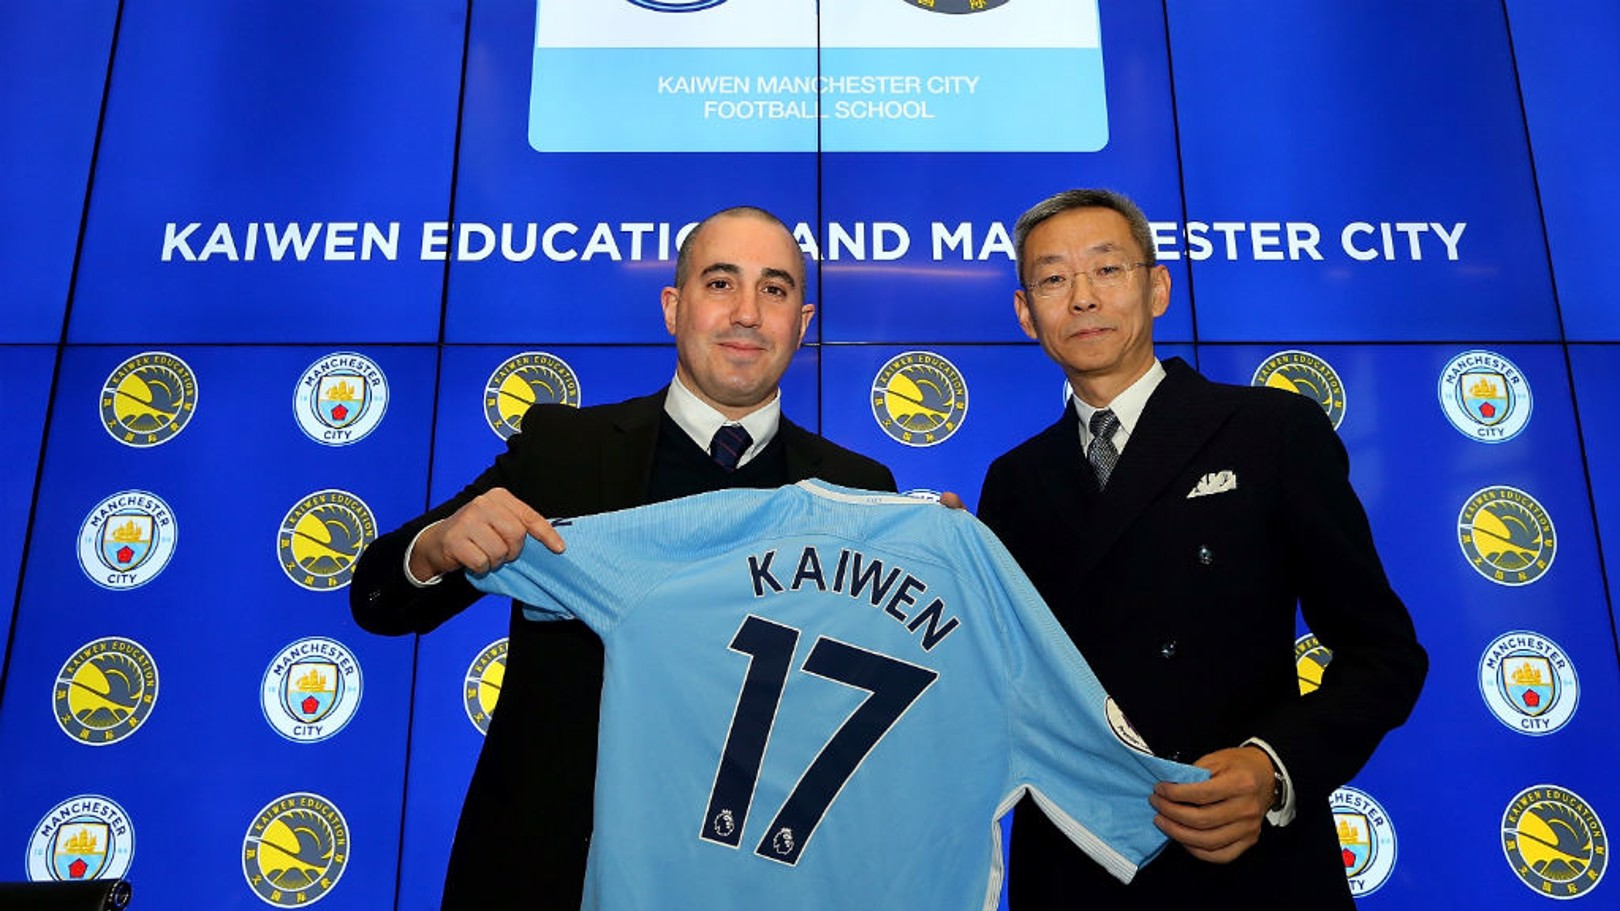 EDUCATION PROGRAMME: The Kaiwen Manchester City Football School.